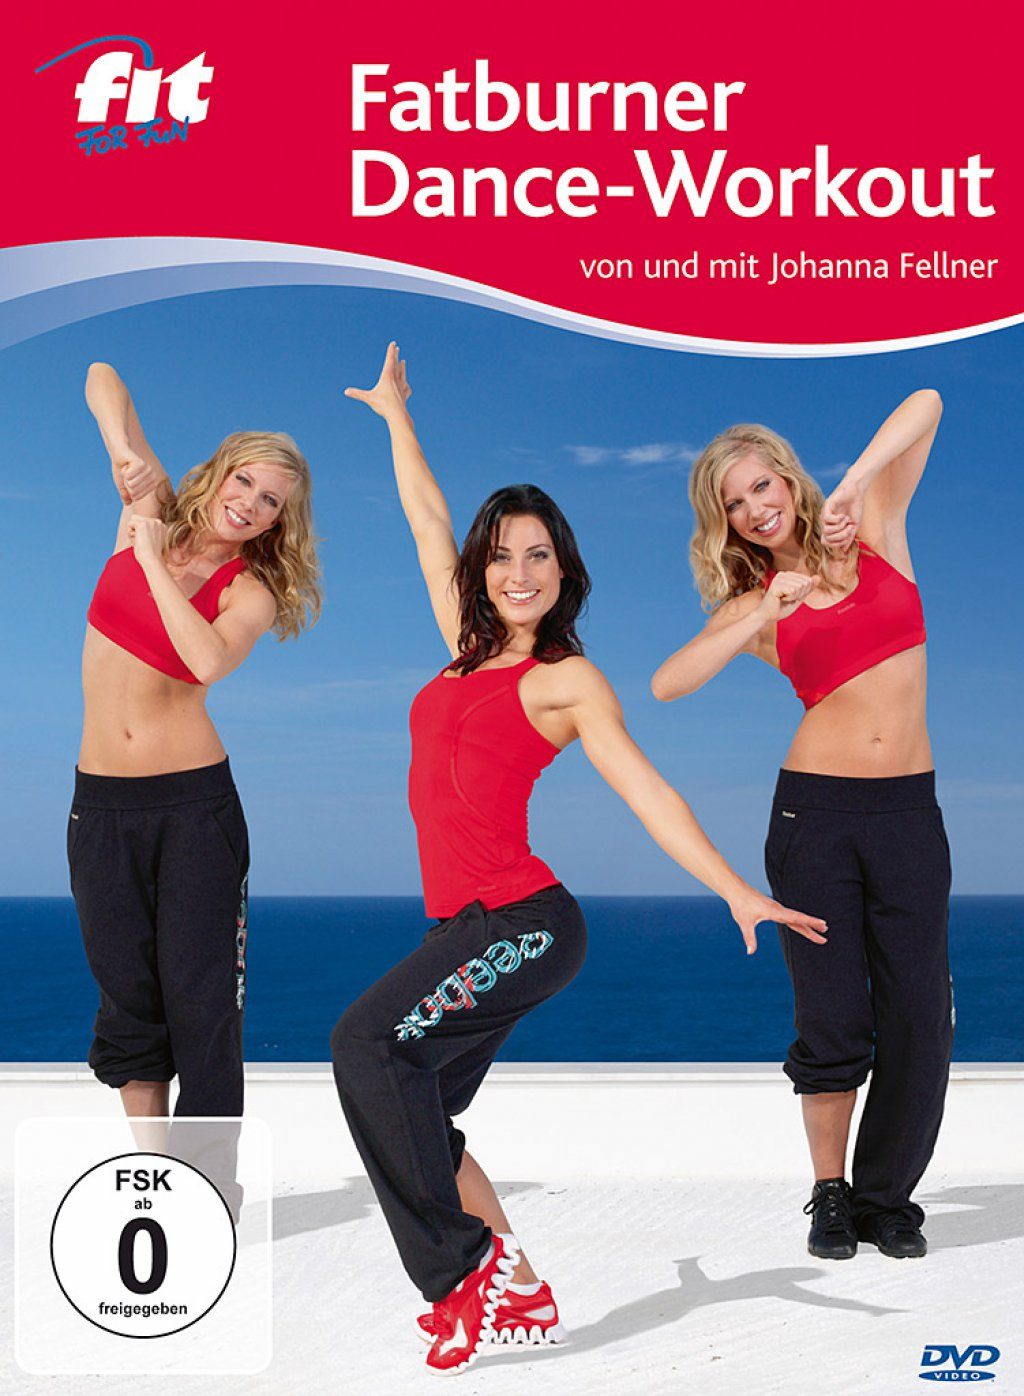 Fit for Fun - Fatburner Dance-Workout (DVD)